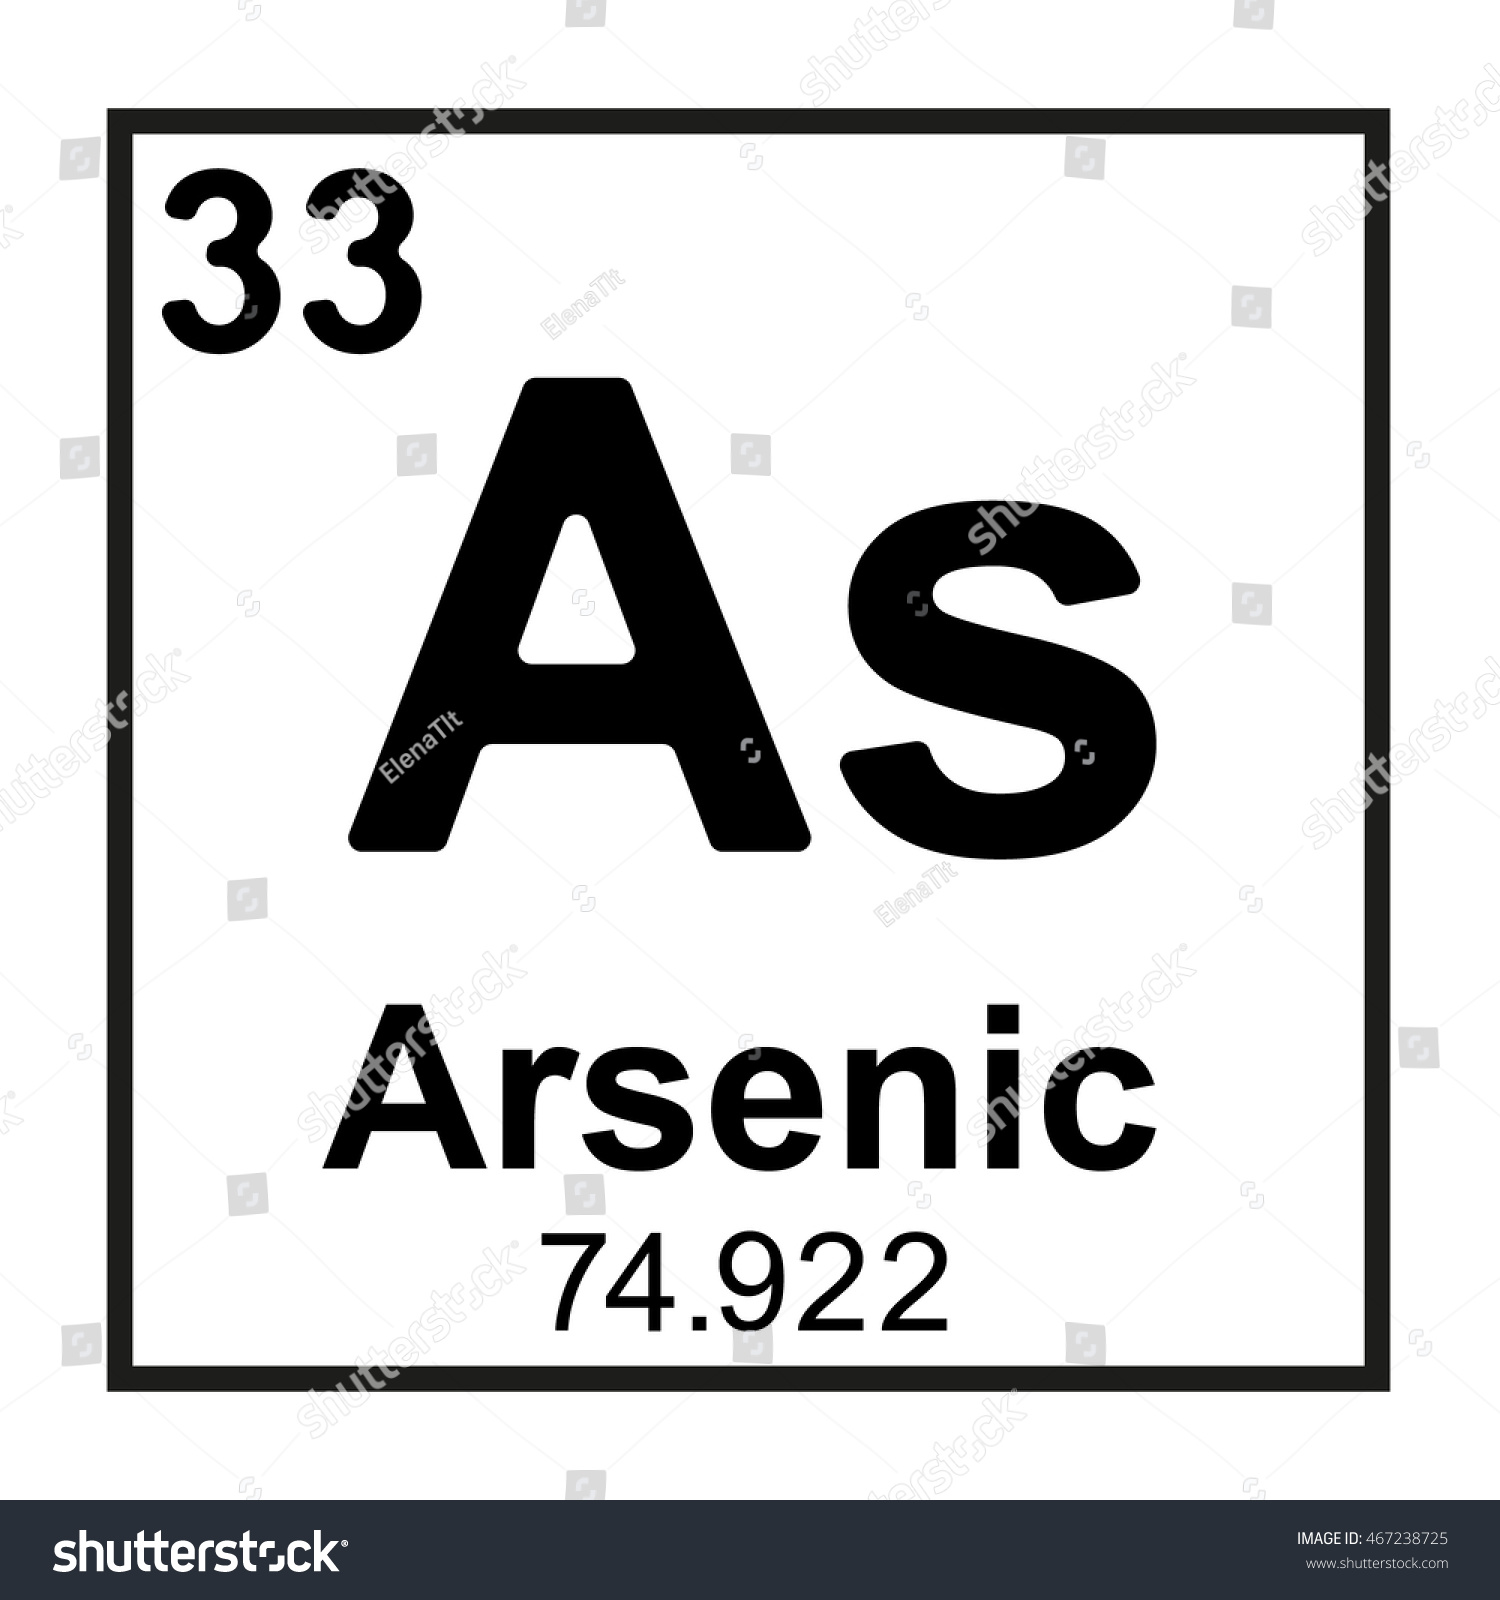 Periodic table element arsenic stock vector 467238725 shutterstock periodic table element arsenic biocorpaavc Image collections